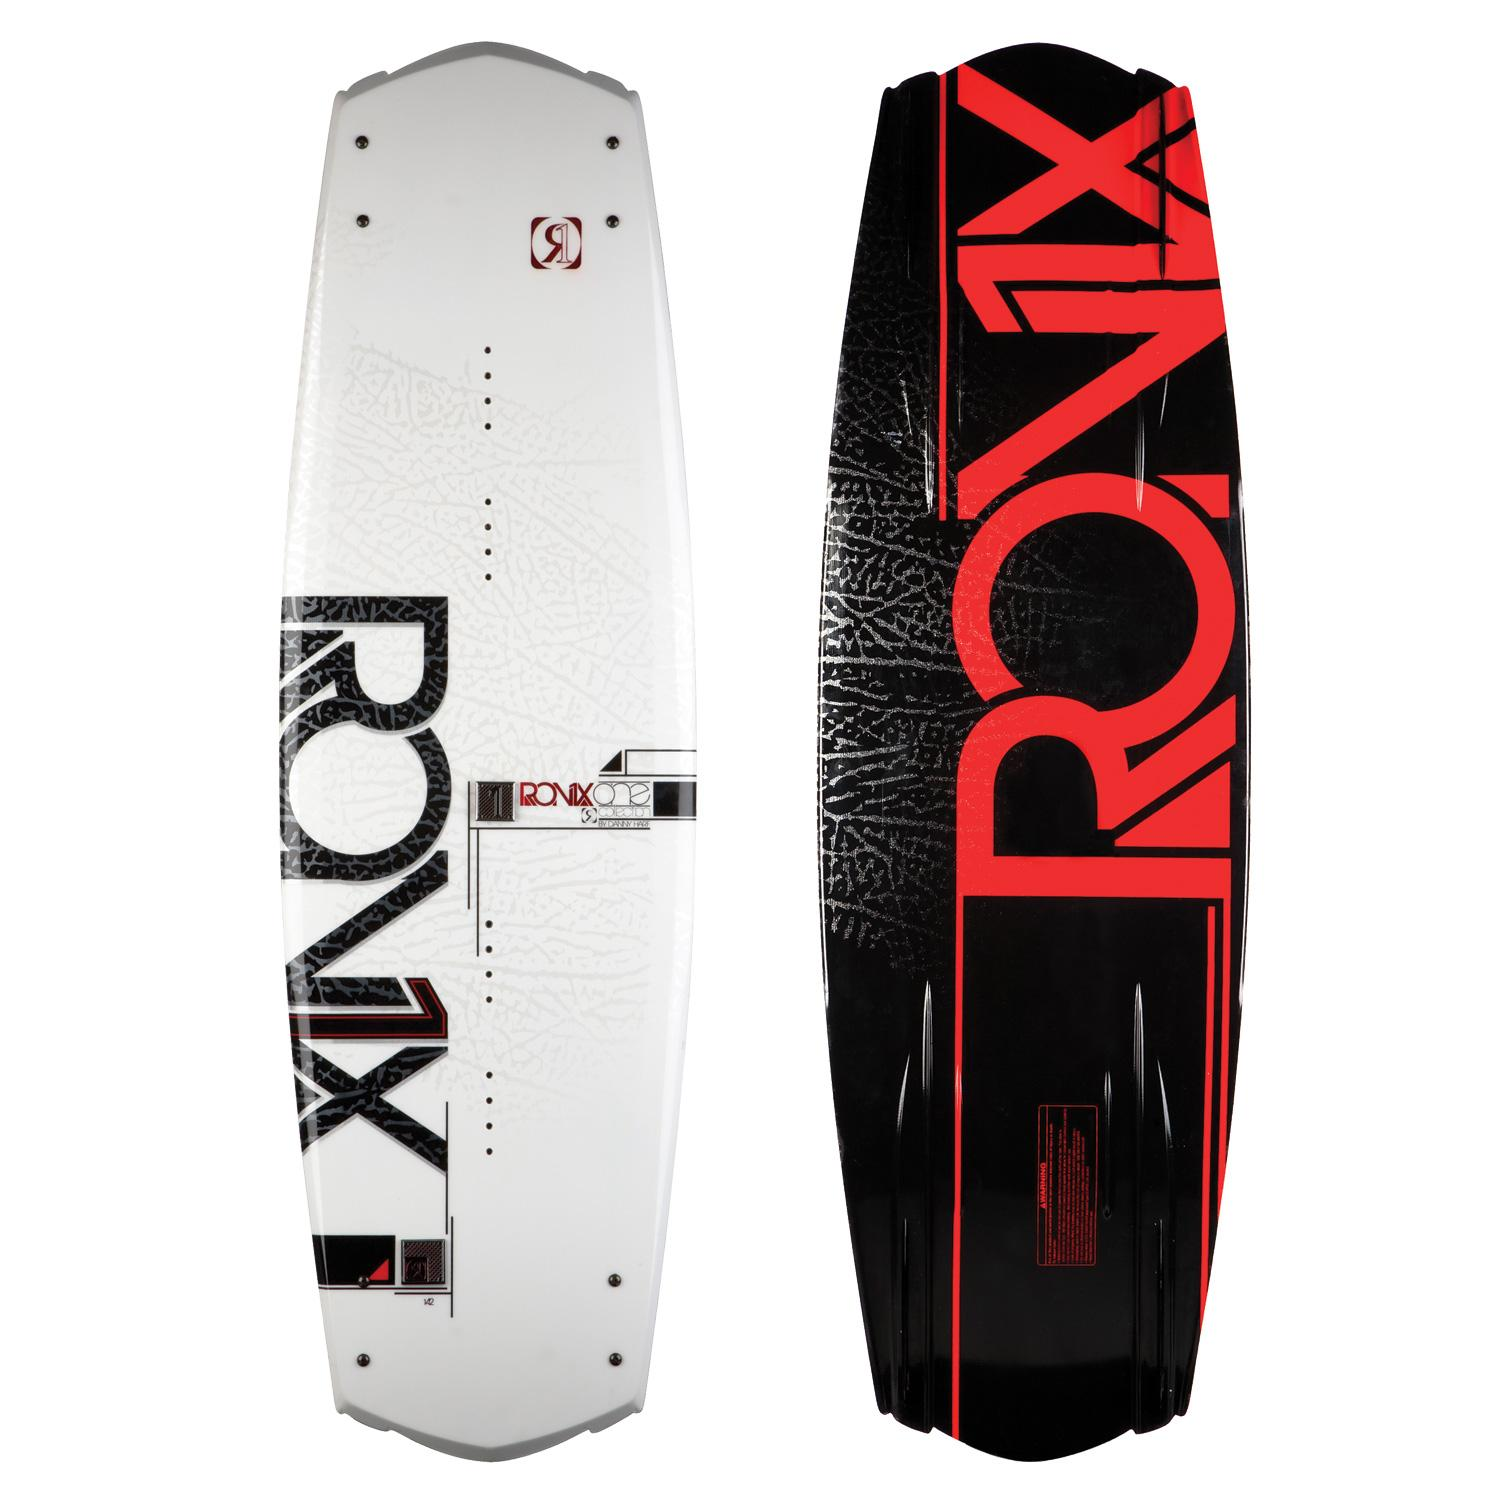 Ronix One Wakeboard 2010 Evo Outlet